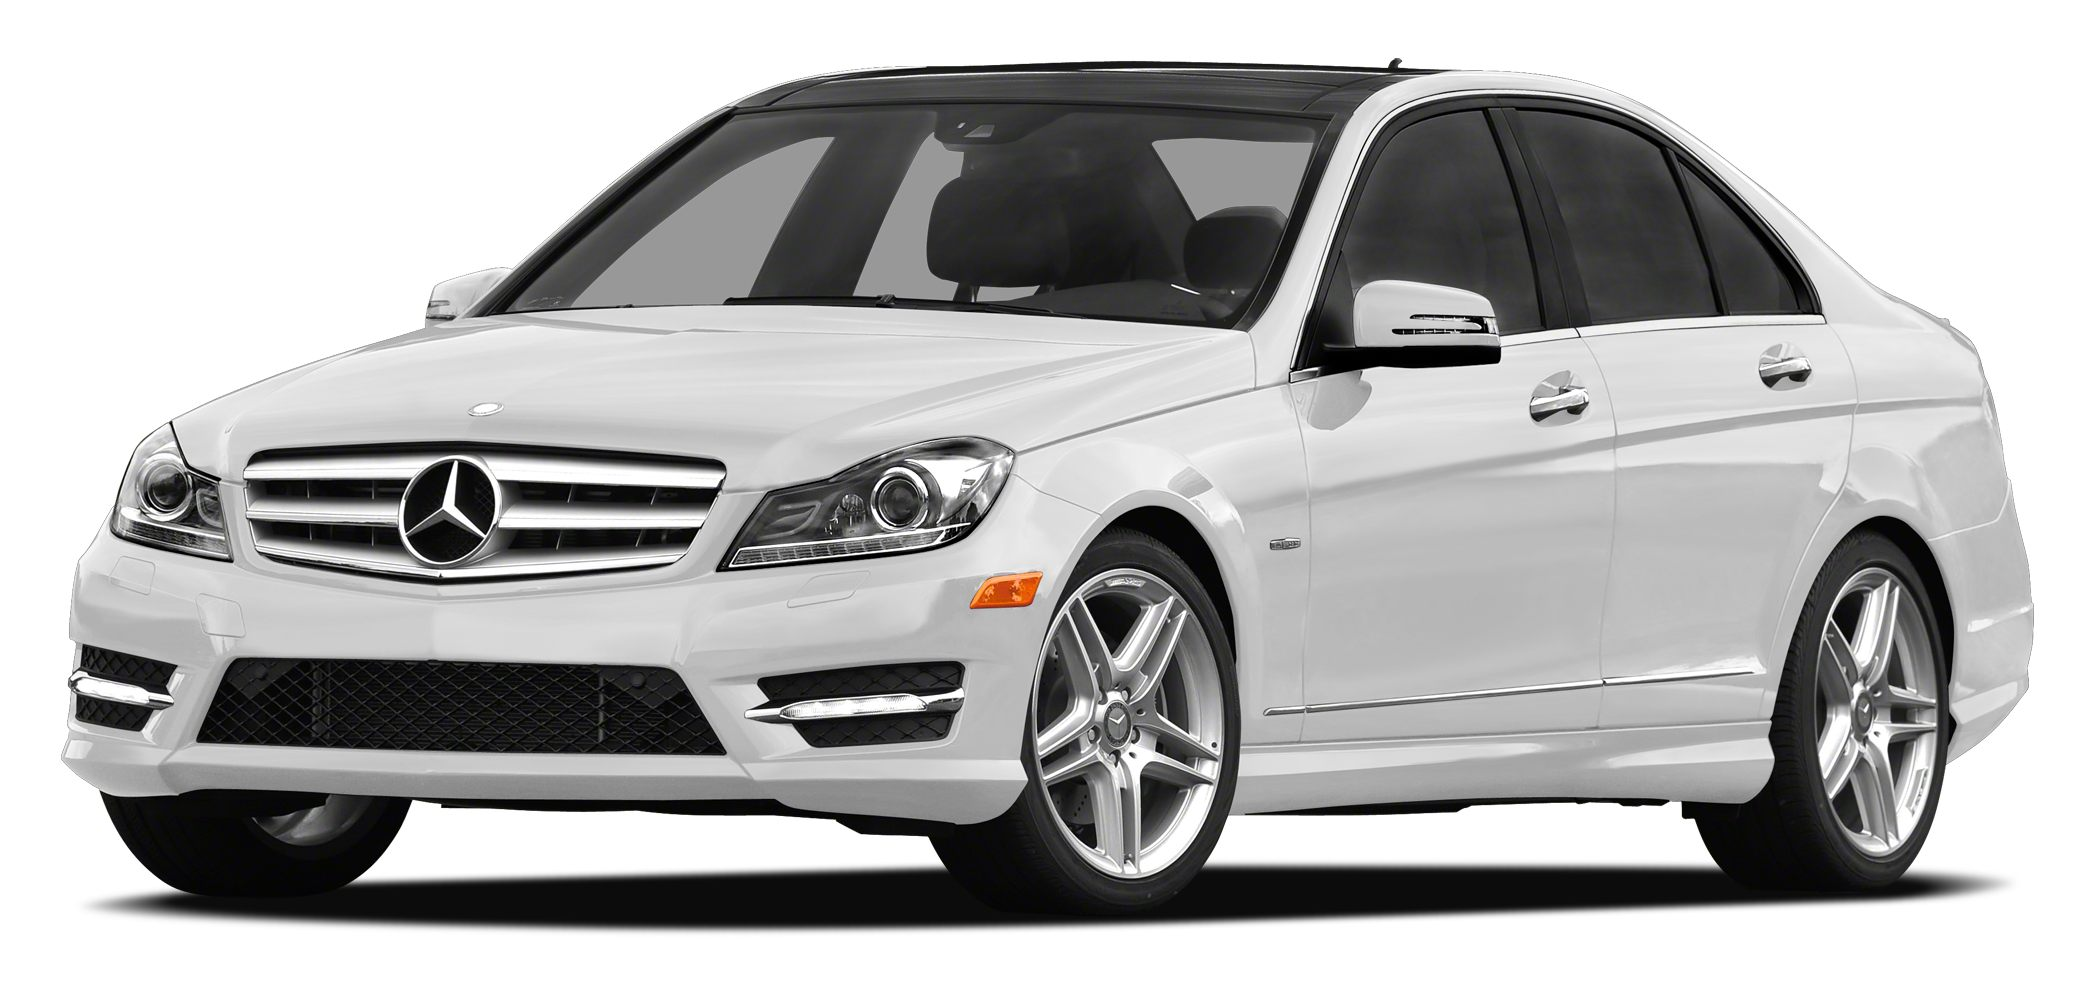 2012 MERCEDES C-Class C250 Sport BUY WITH CONFIDENCE CARFAX 1-Owner C-Class and CARFAX Buyback Gu